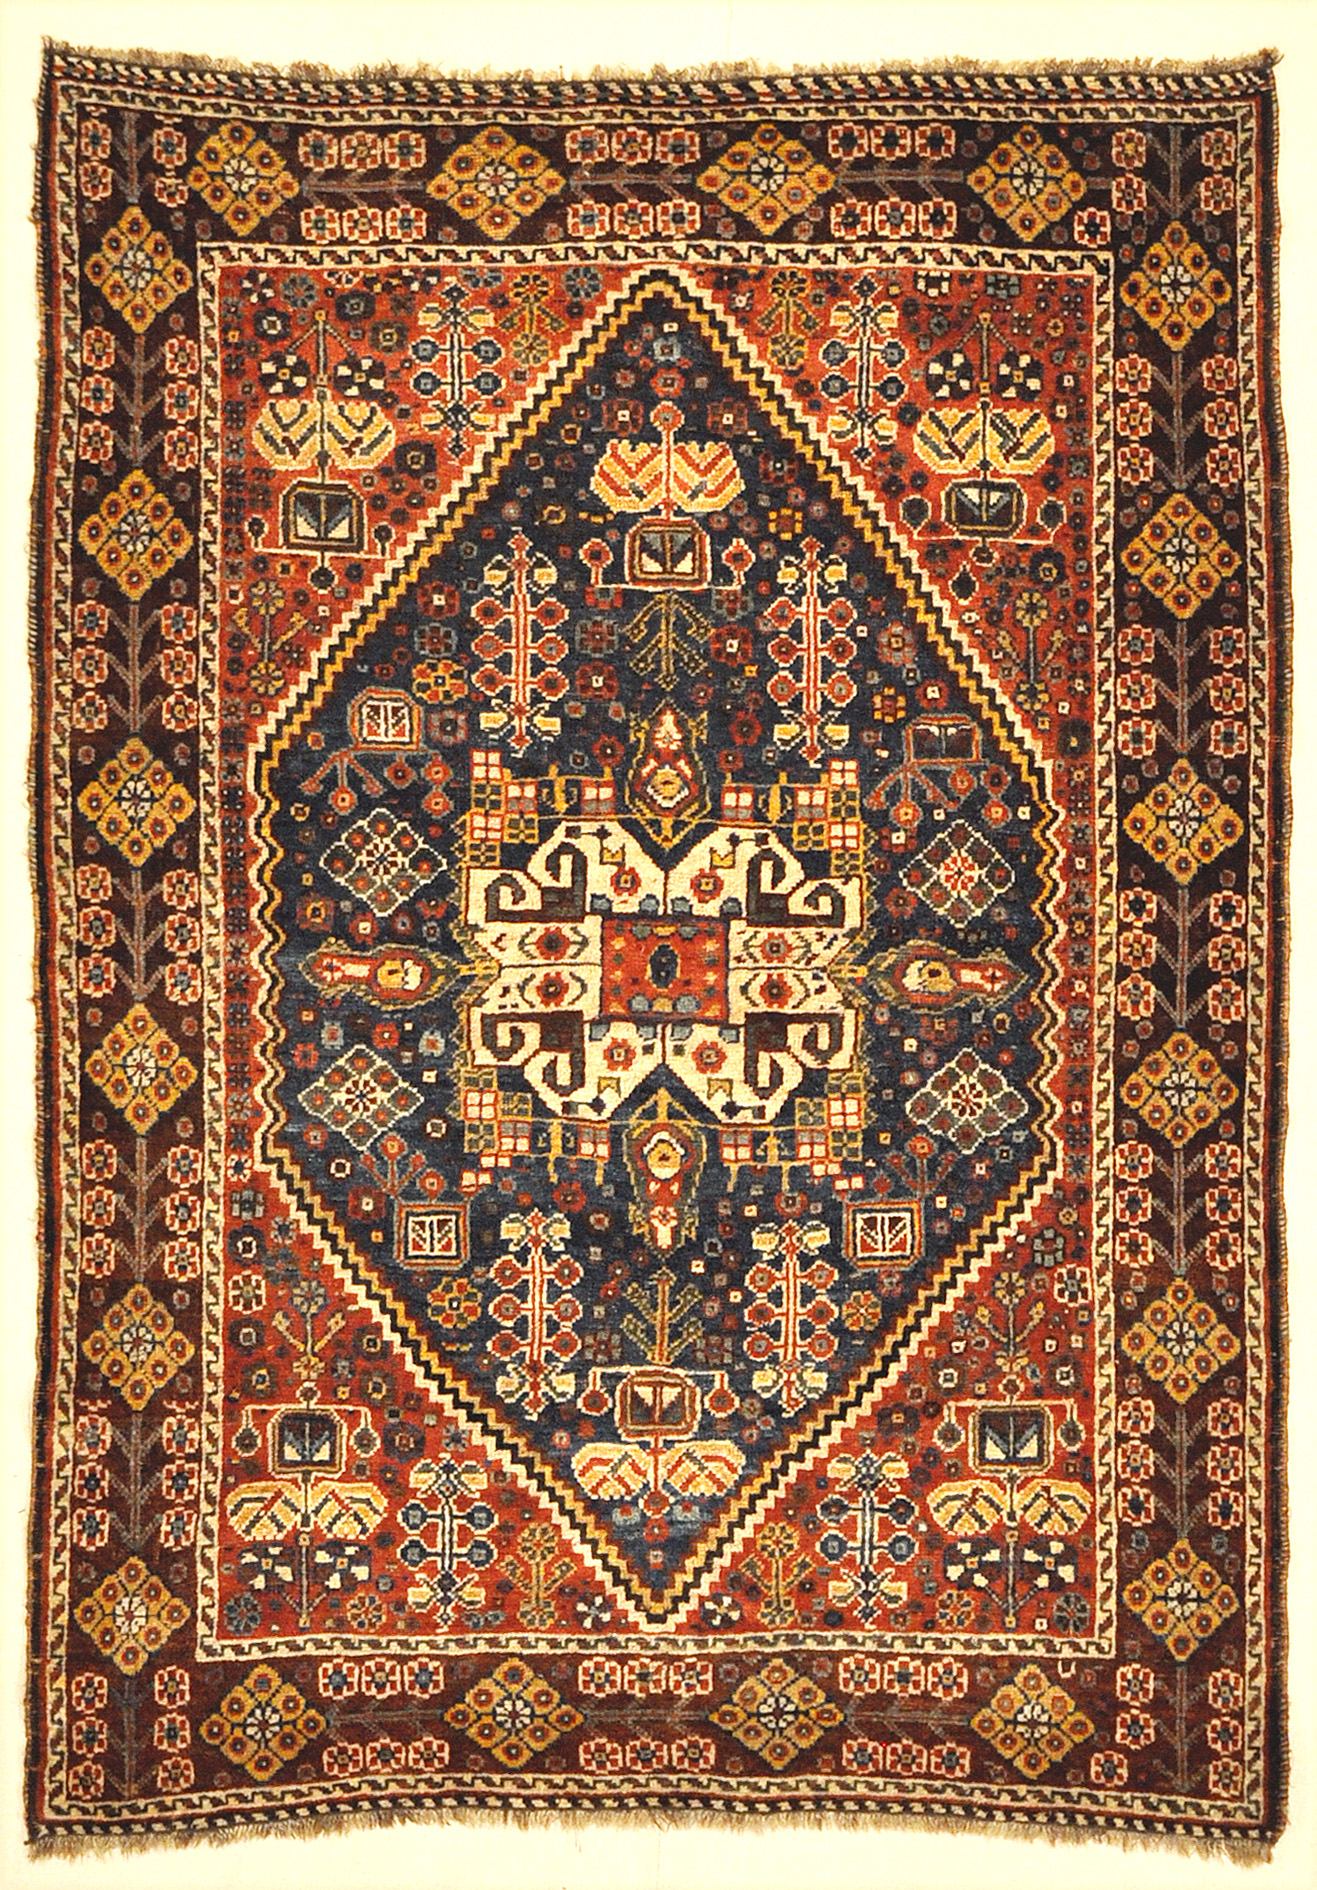 Antique Persian Qashgai Woven Circa 1890 Genuine Authentic Intricate Woven Carpet Art Santa Barbara Design Center Rugs and More